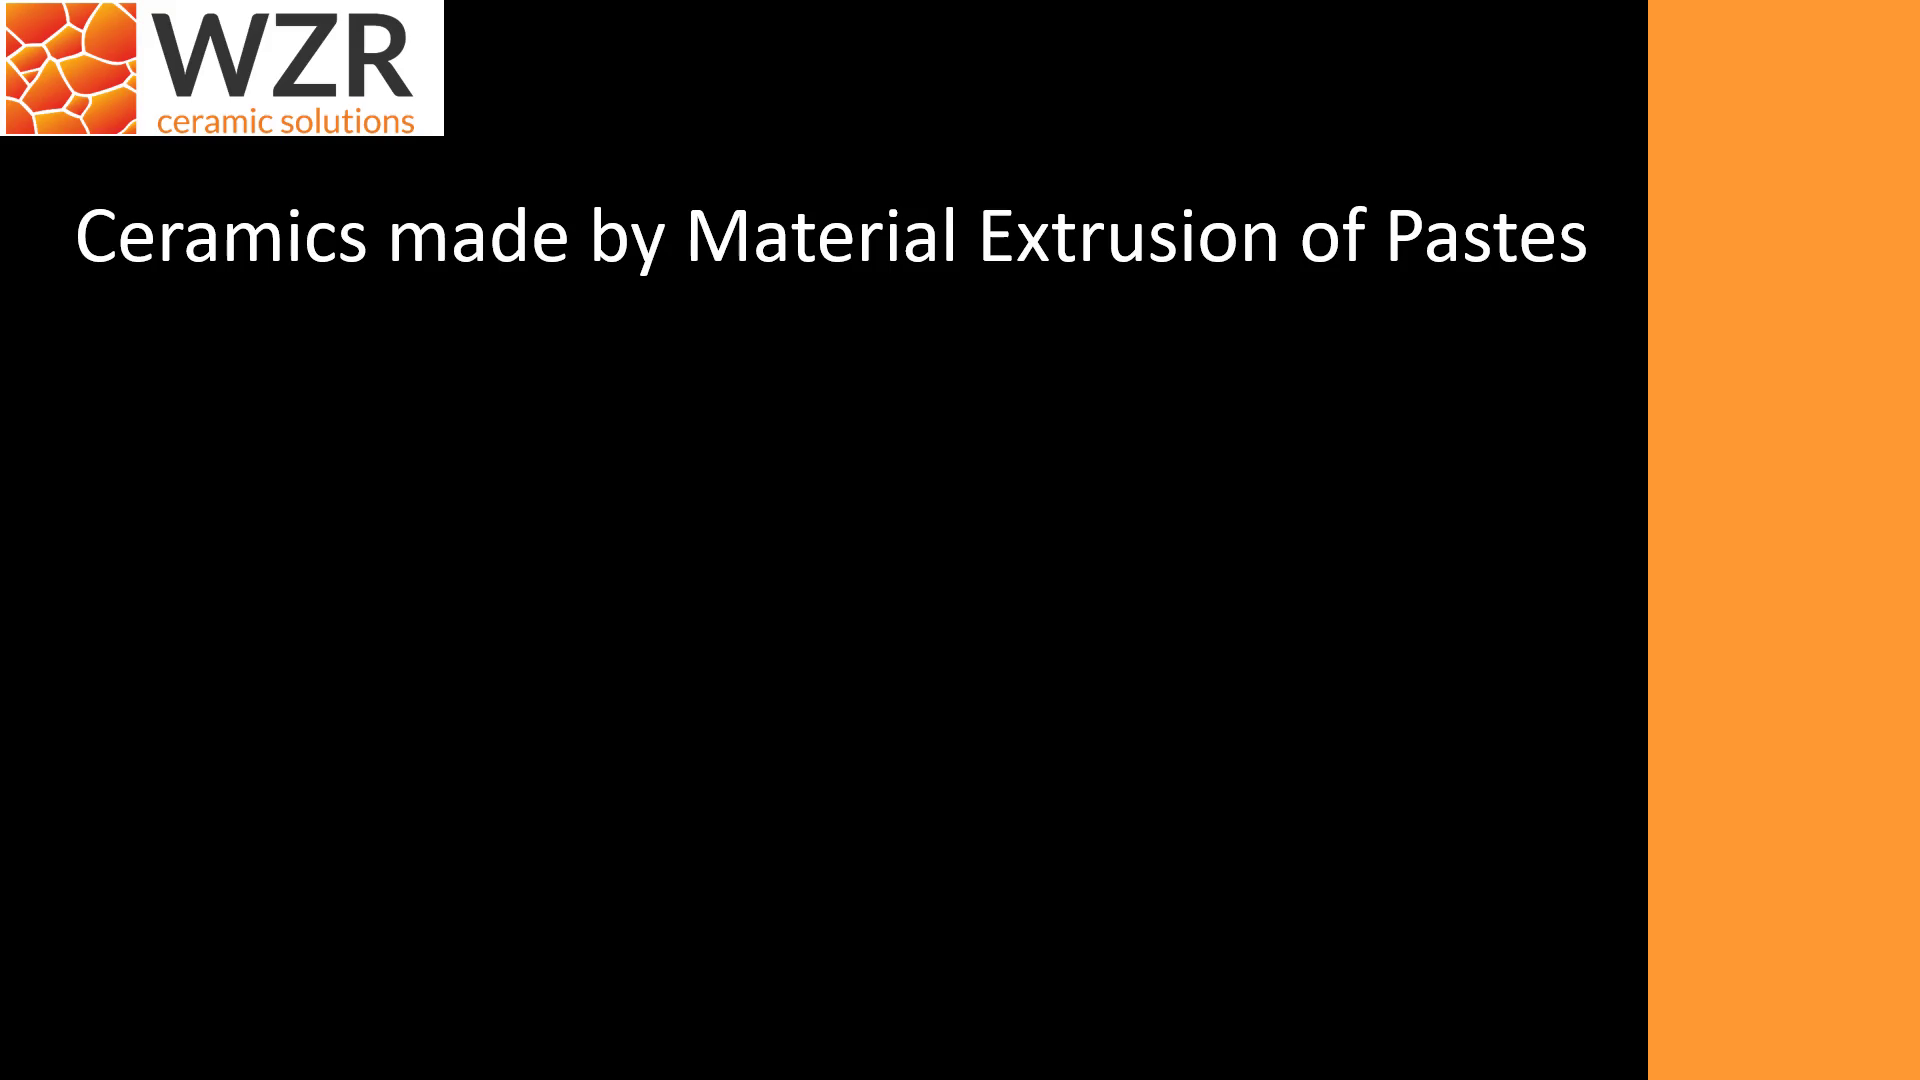 Ceramics made by Material Extrusion of Pastes